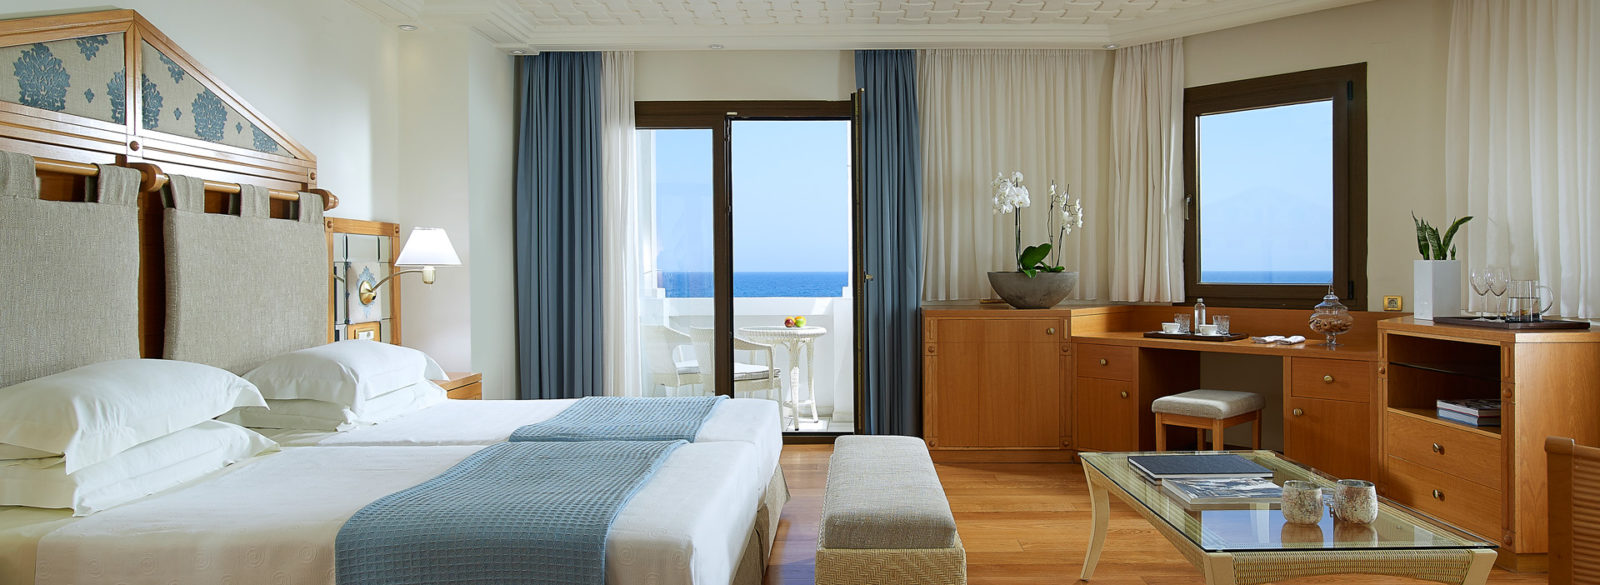 5-star Knossos Villas Luxury Resort in Crete, Greece | Book Villas Online